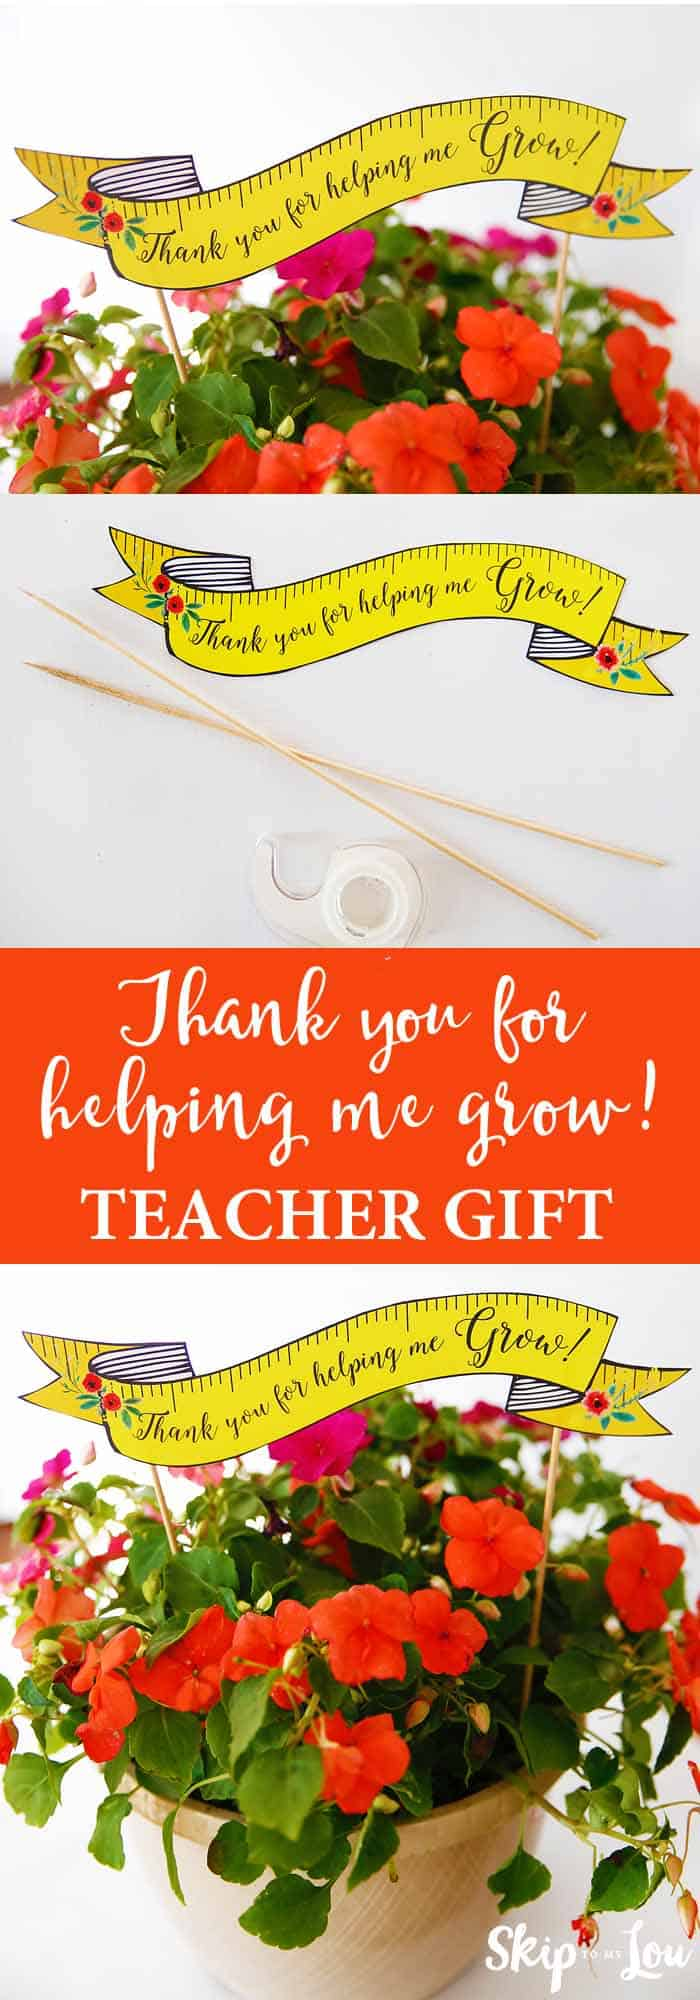 flower teacher thank you gift